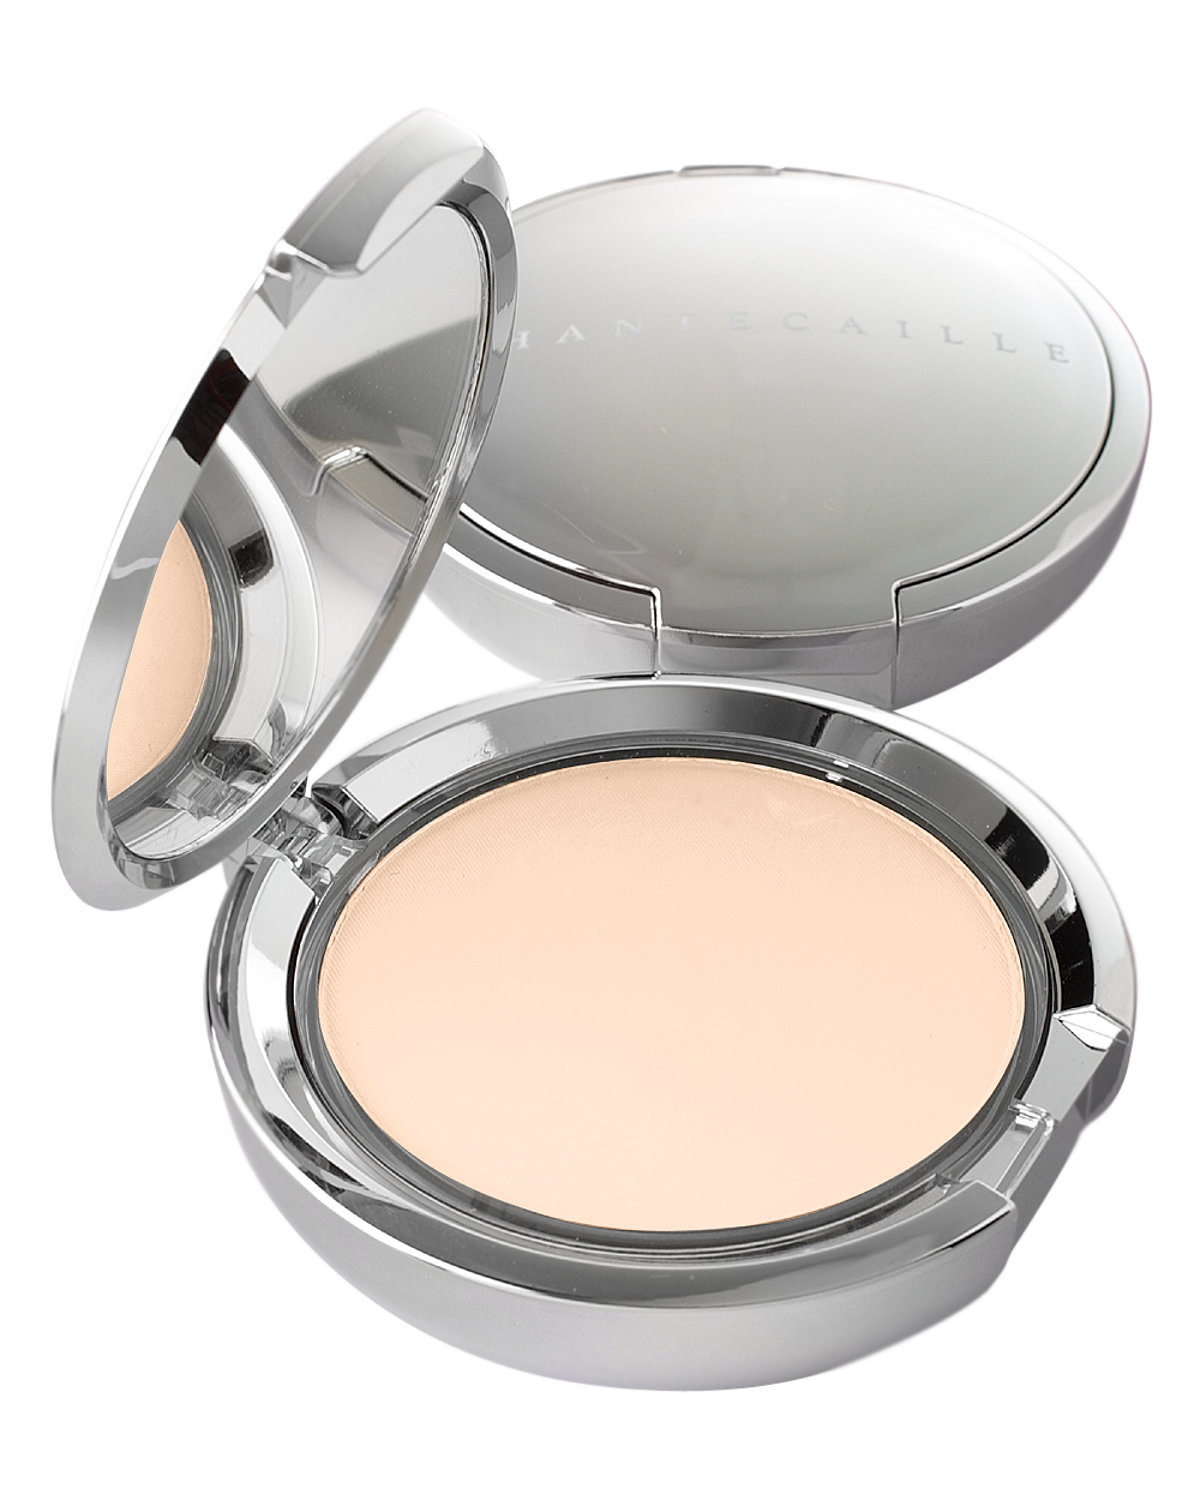 Chantecaille COMPACT MAKEUP POWDER FOUNDATION